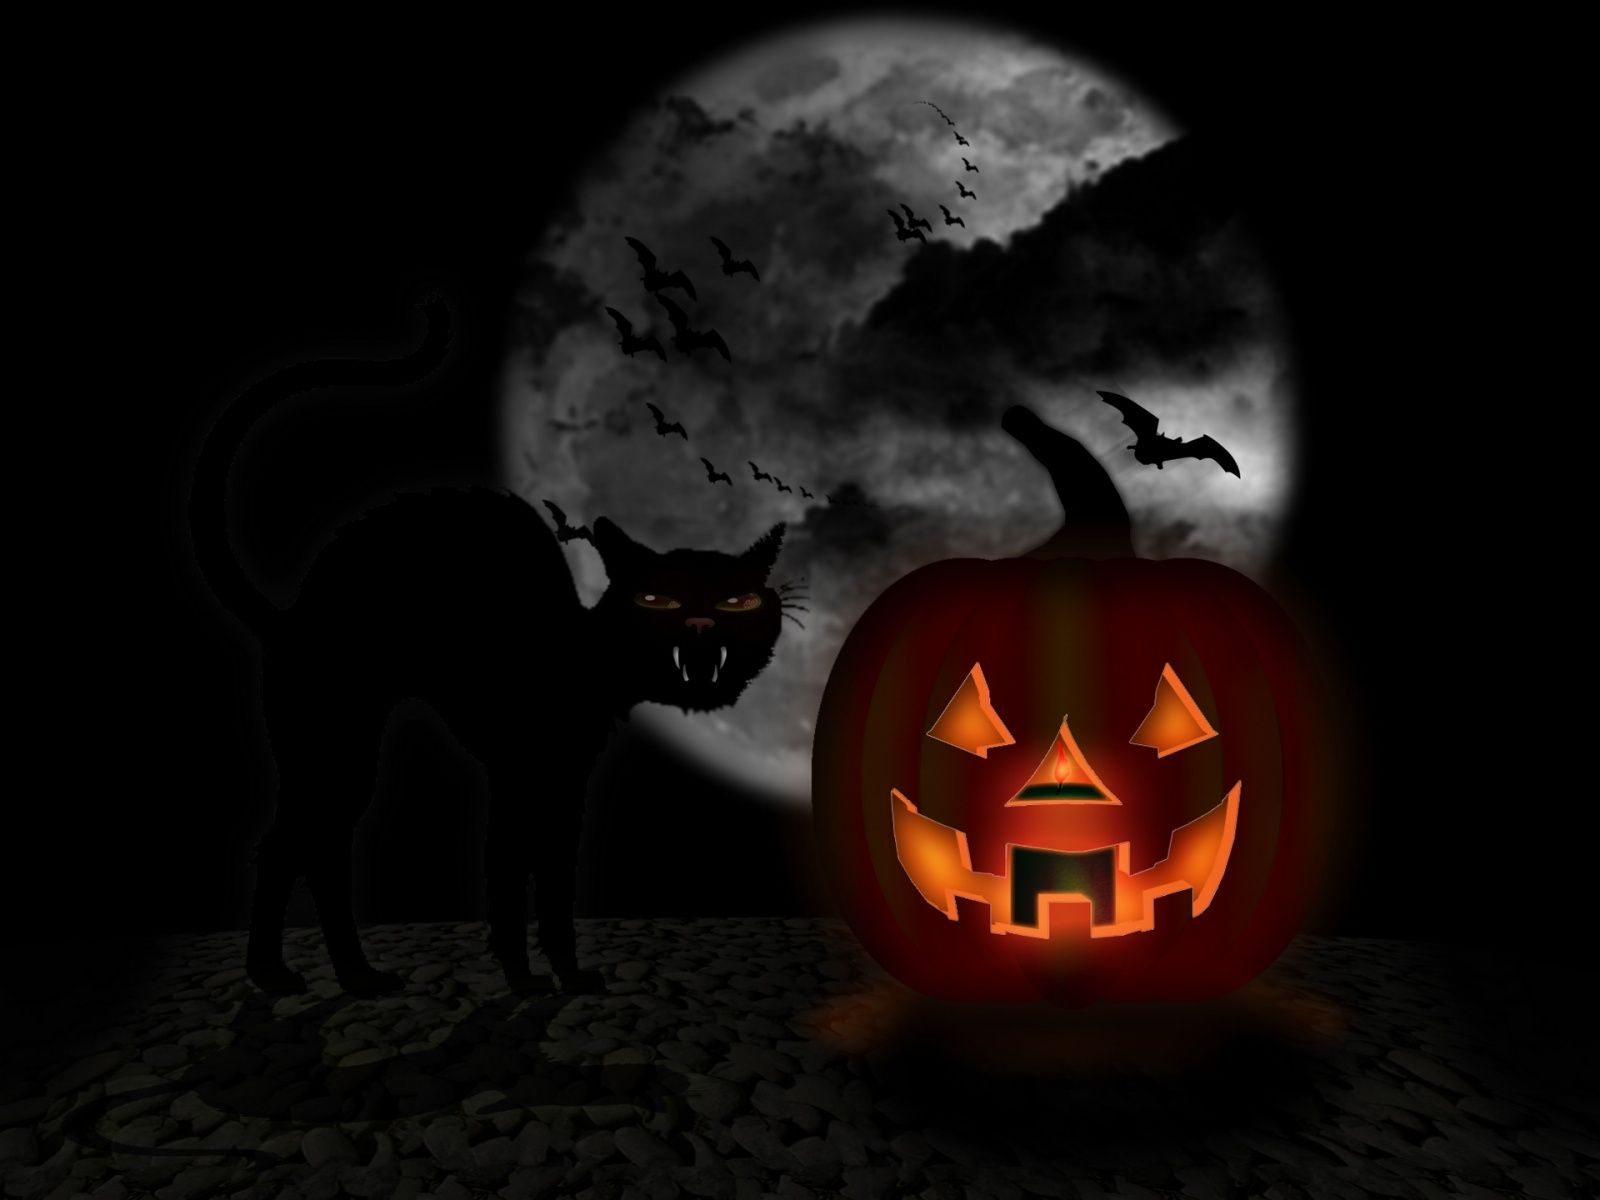 Halloween Wallpapers For Computer - Wallpaper Cave